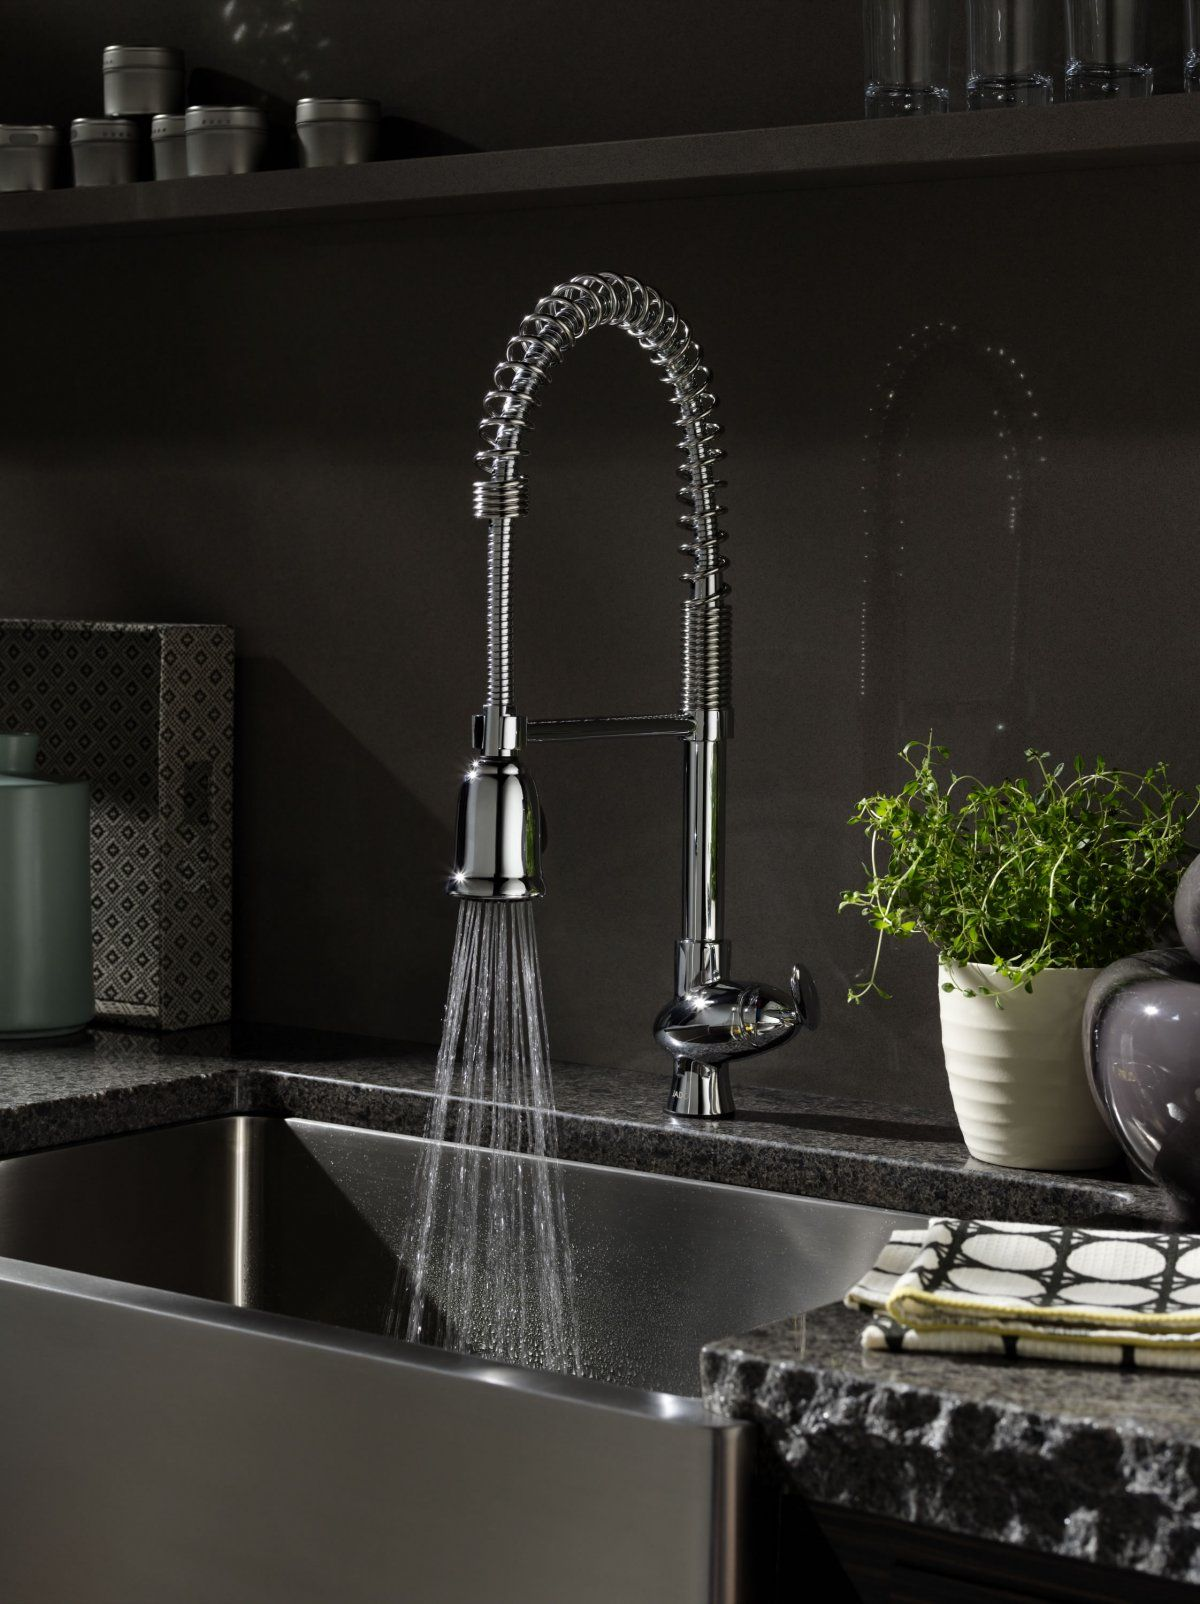 Best Stainless Steel Kitchen Faucets Updated Reviews 2019 in ...